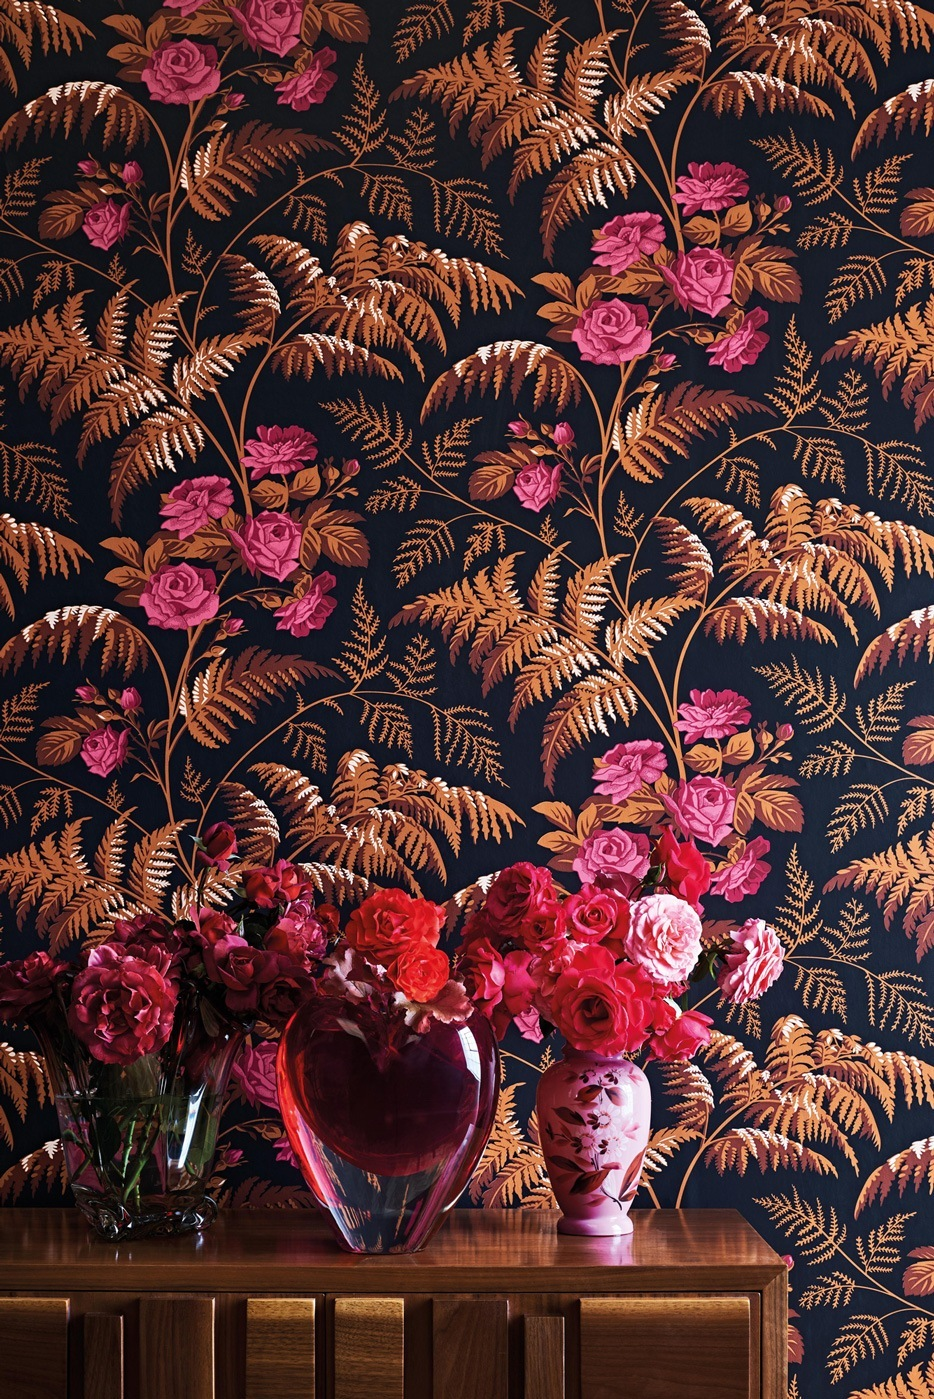 Rose - Flower pattern - Cole & Son Wallpaper